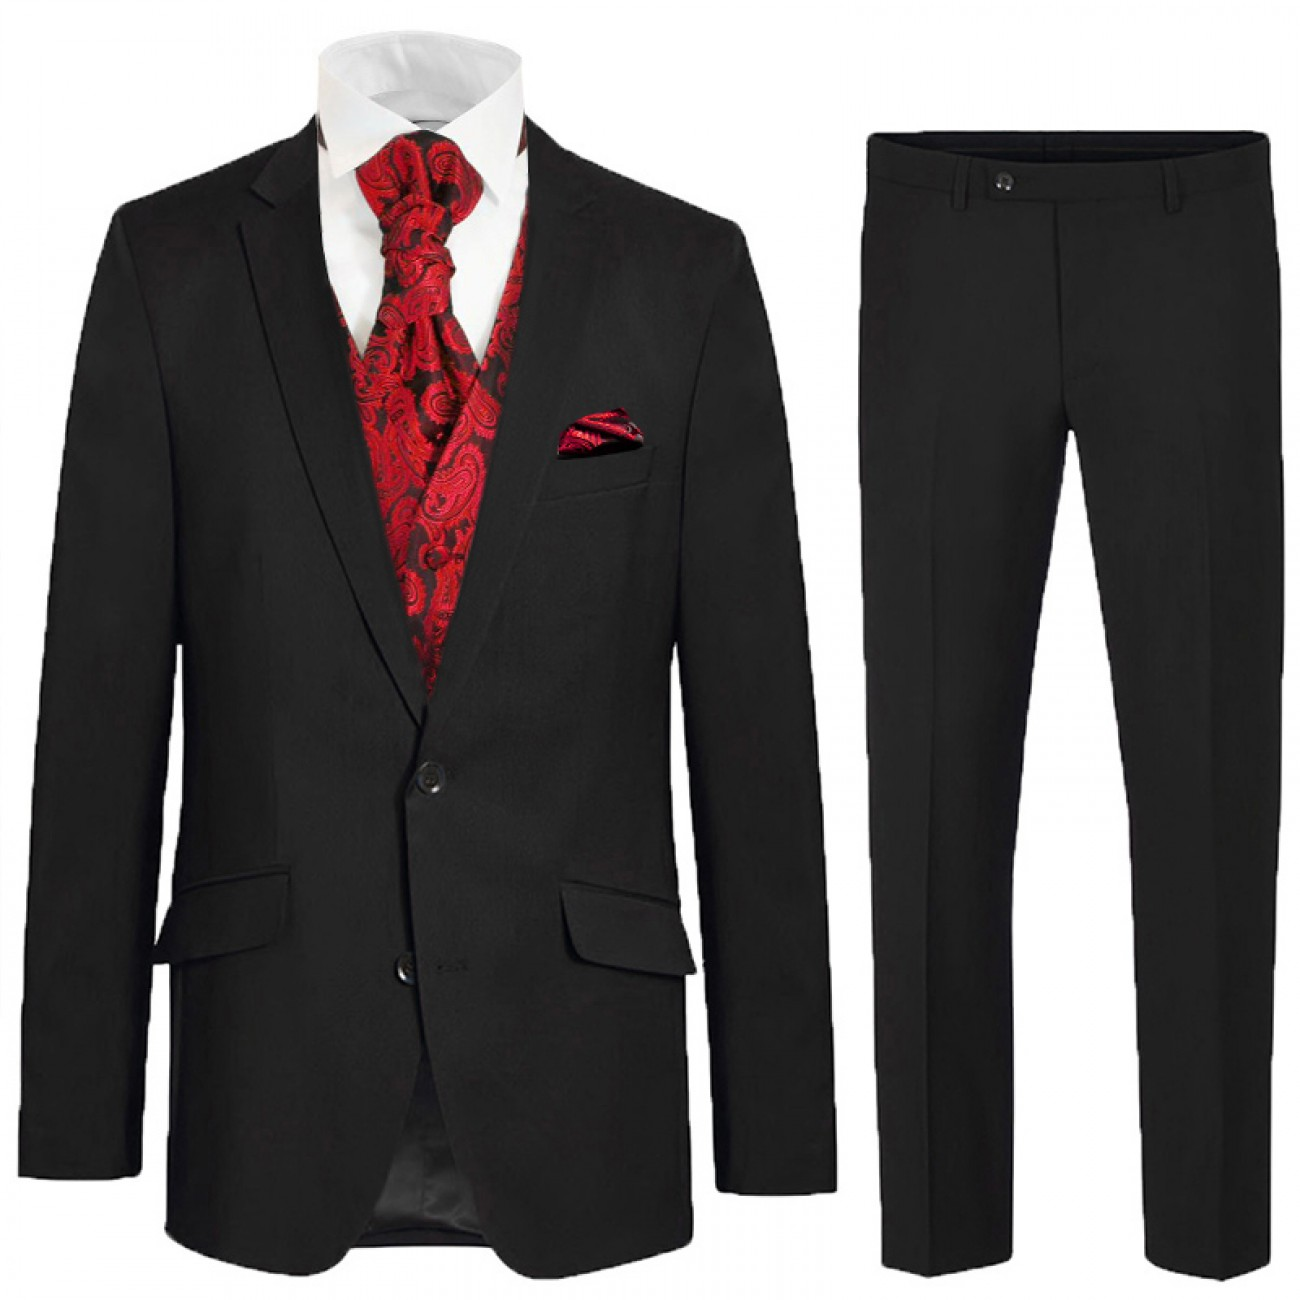 Black Men Wedding Suit 6 Pcs Modern Red Paisley Waistcoat Ha16v99 Paul Malone Shop